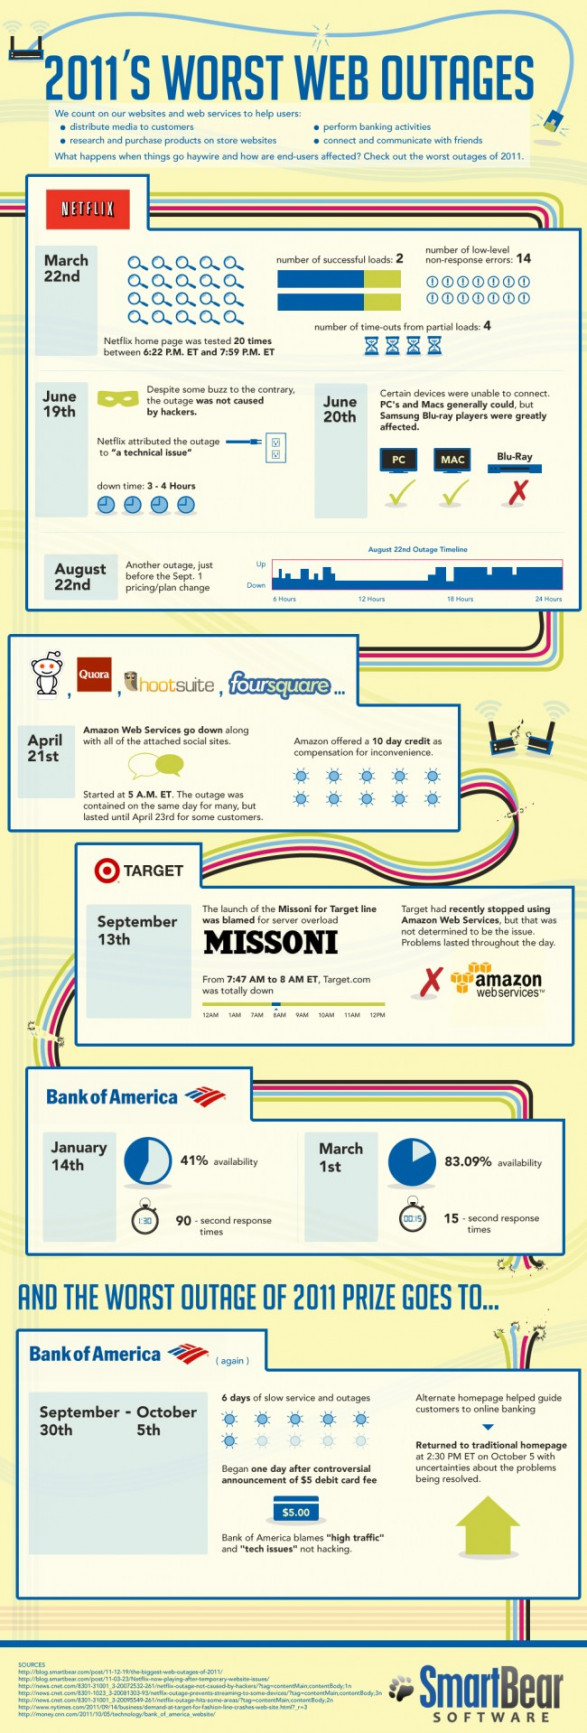 The Biggest Web Outages of 2011